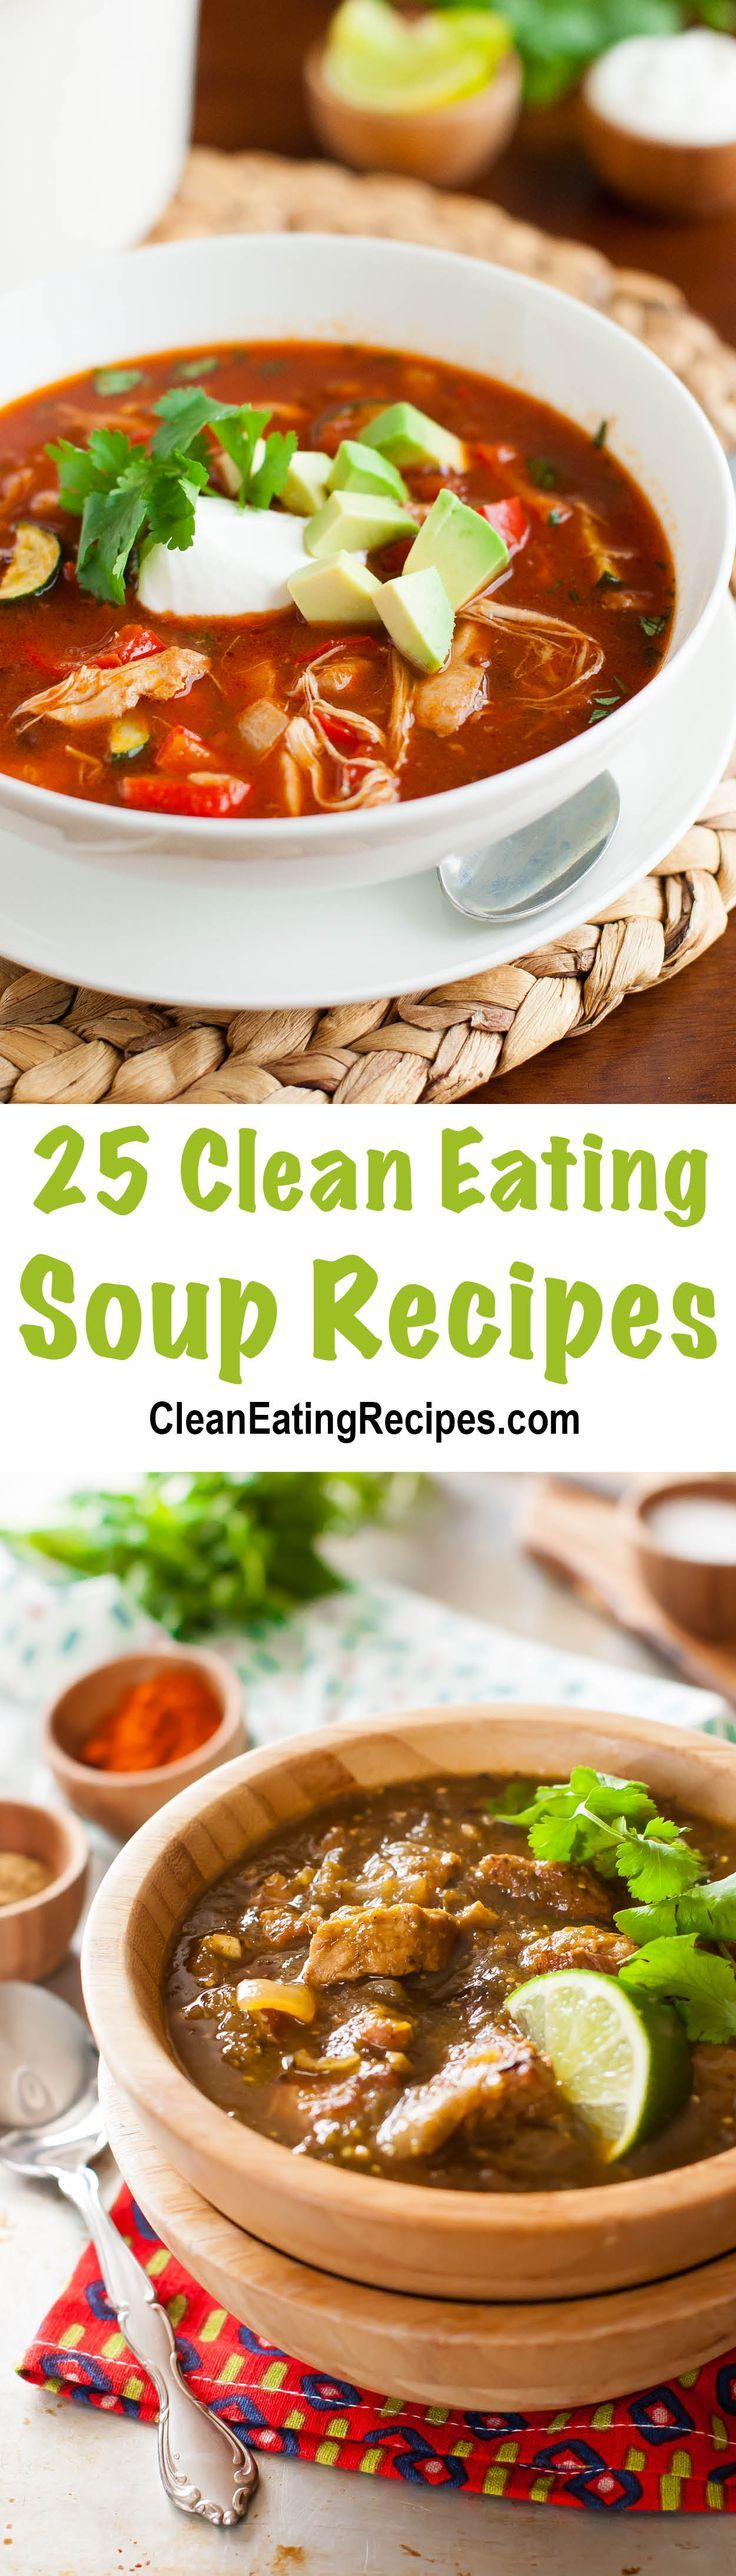 I love Clean Eating soup. So easy to throw all the ingredients in and let all the flavors meld together.